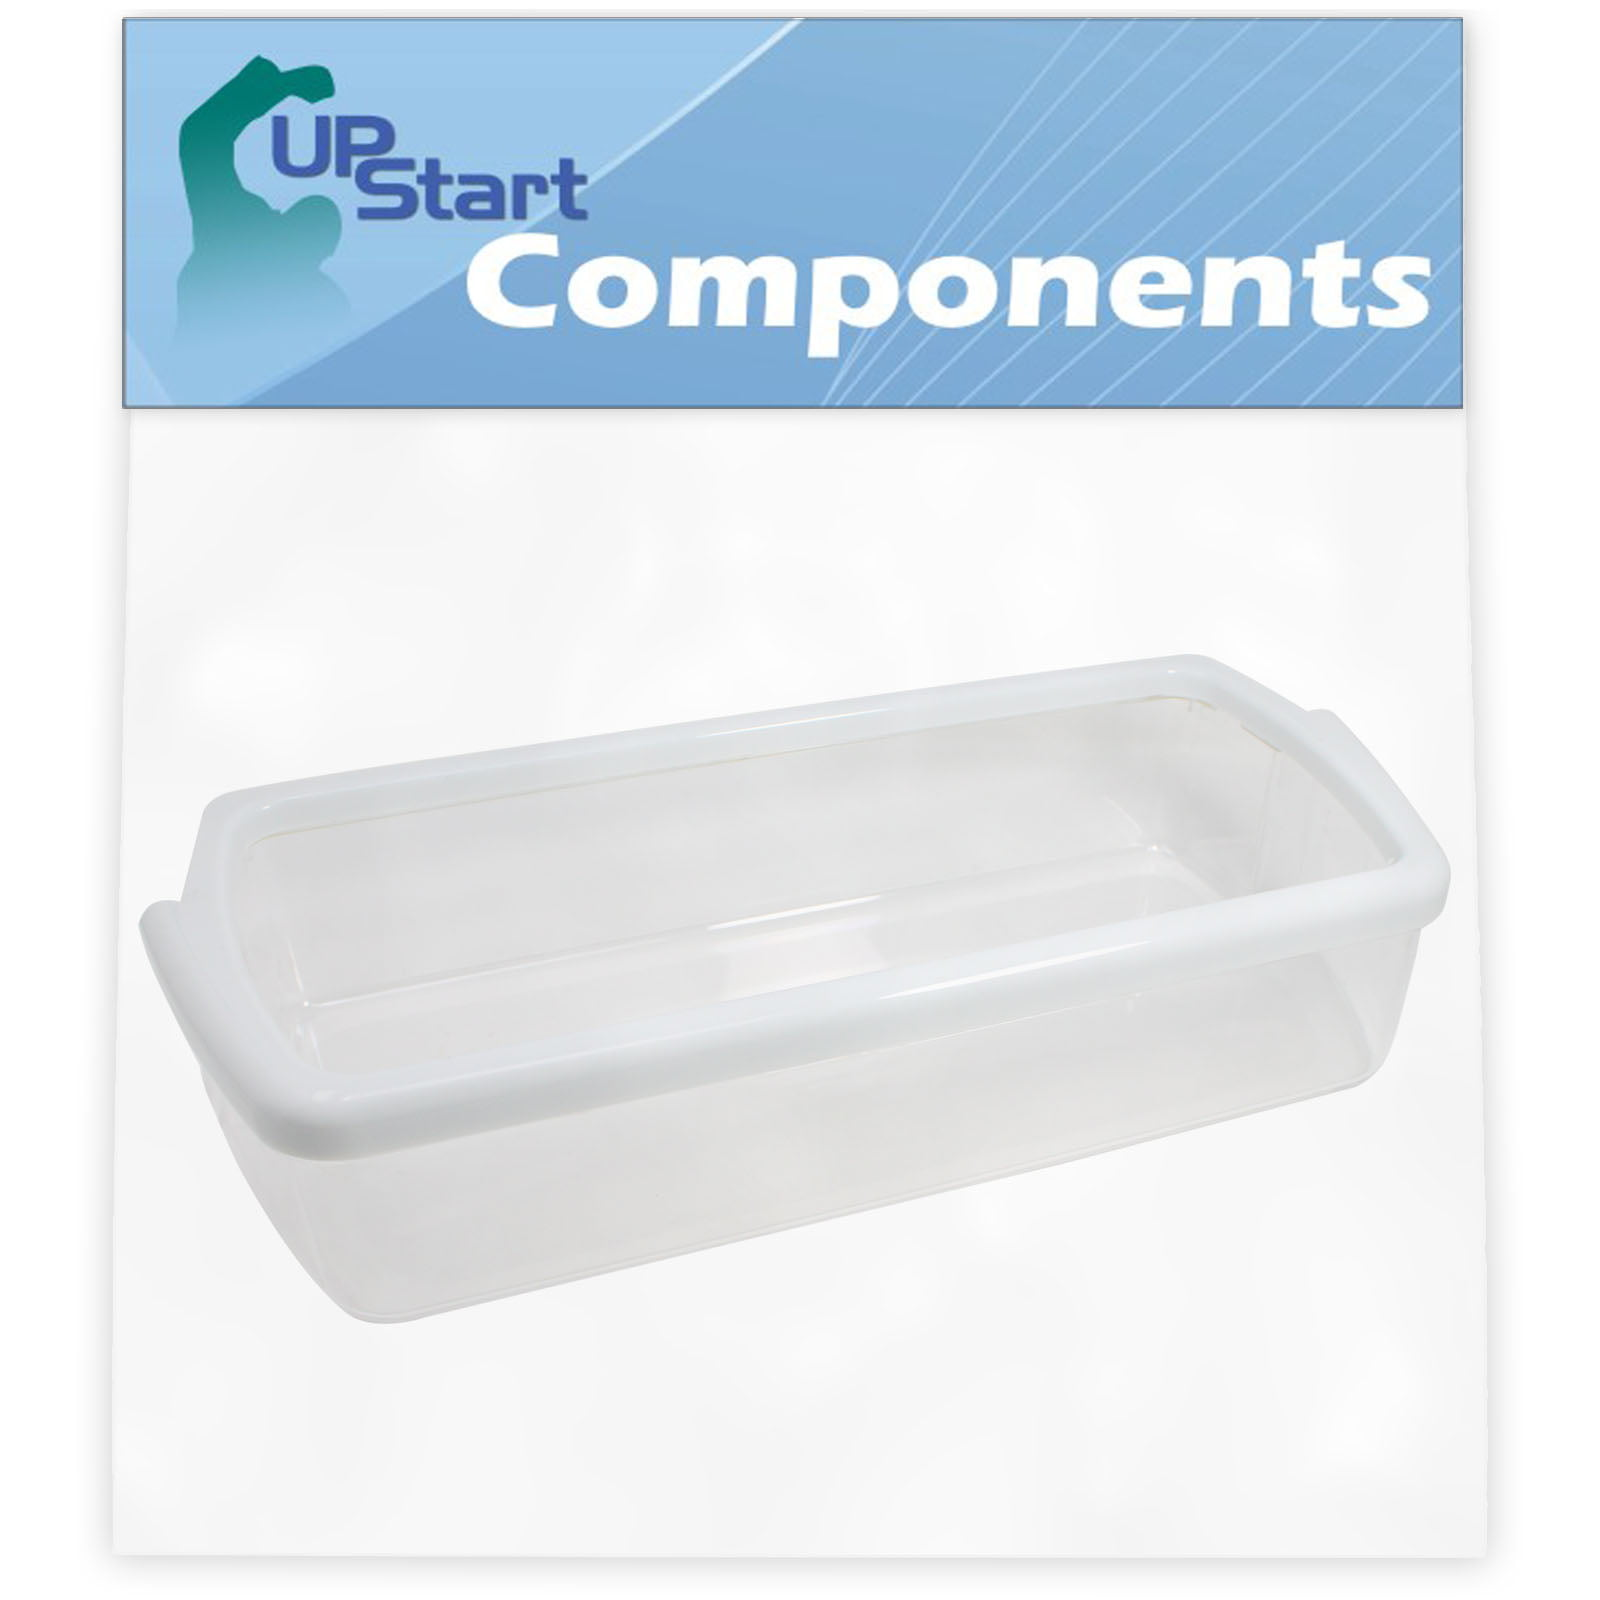 Compatible with WPW10321304 Door Bin W10321304 Refrigerator Door Bin Replacement for Kenmore//Sears 106.56863601 Refrigerator